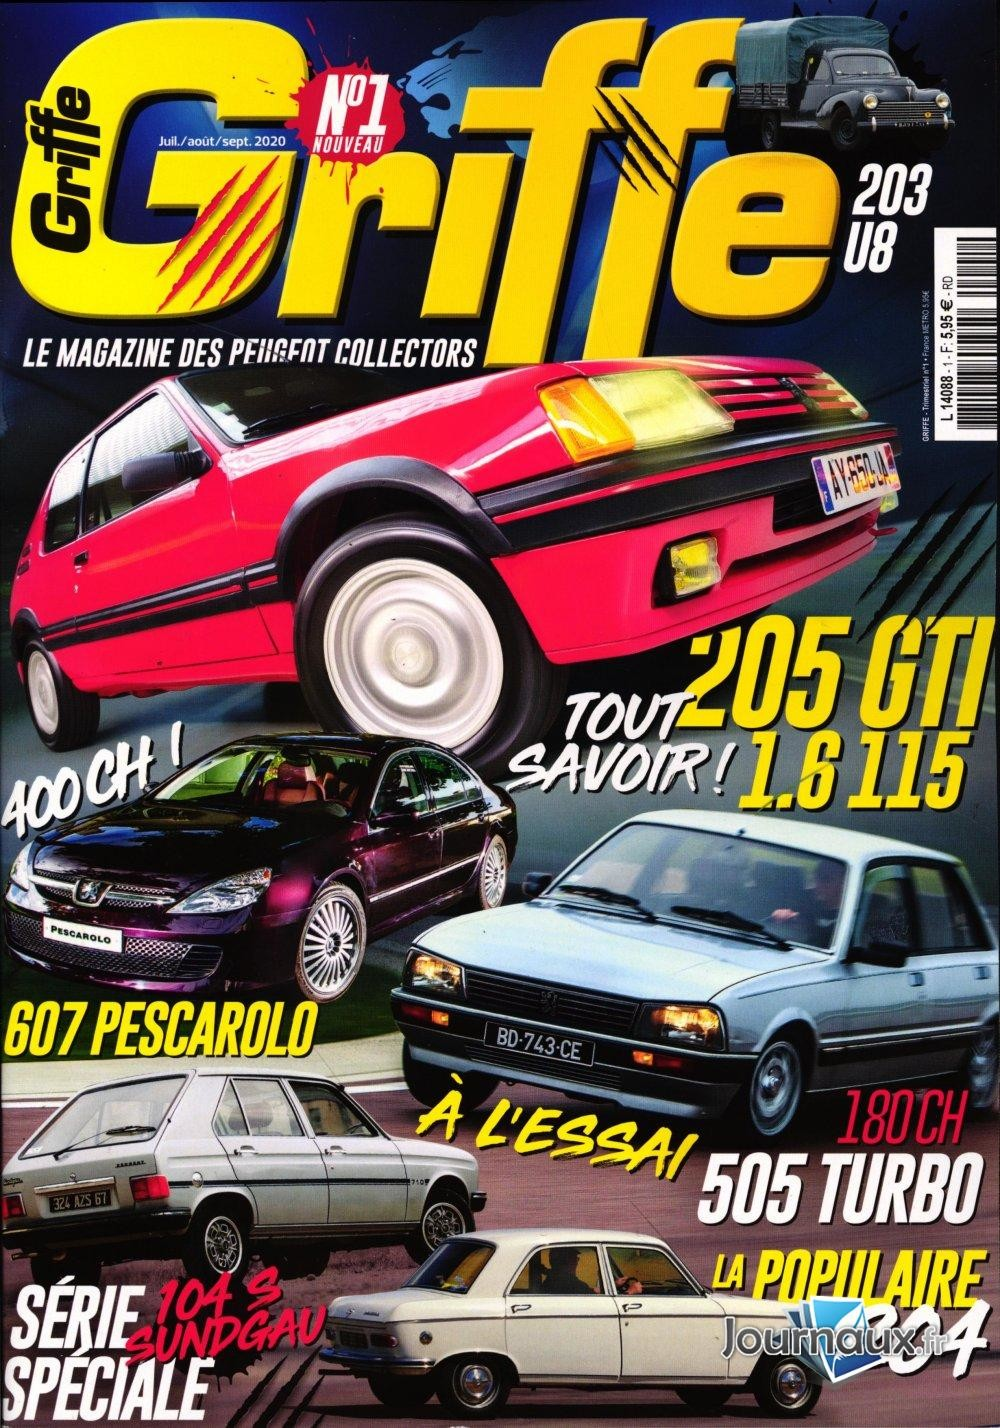 Magazine Griffe Big-8410